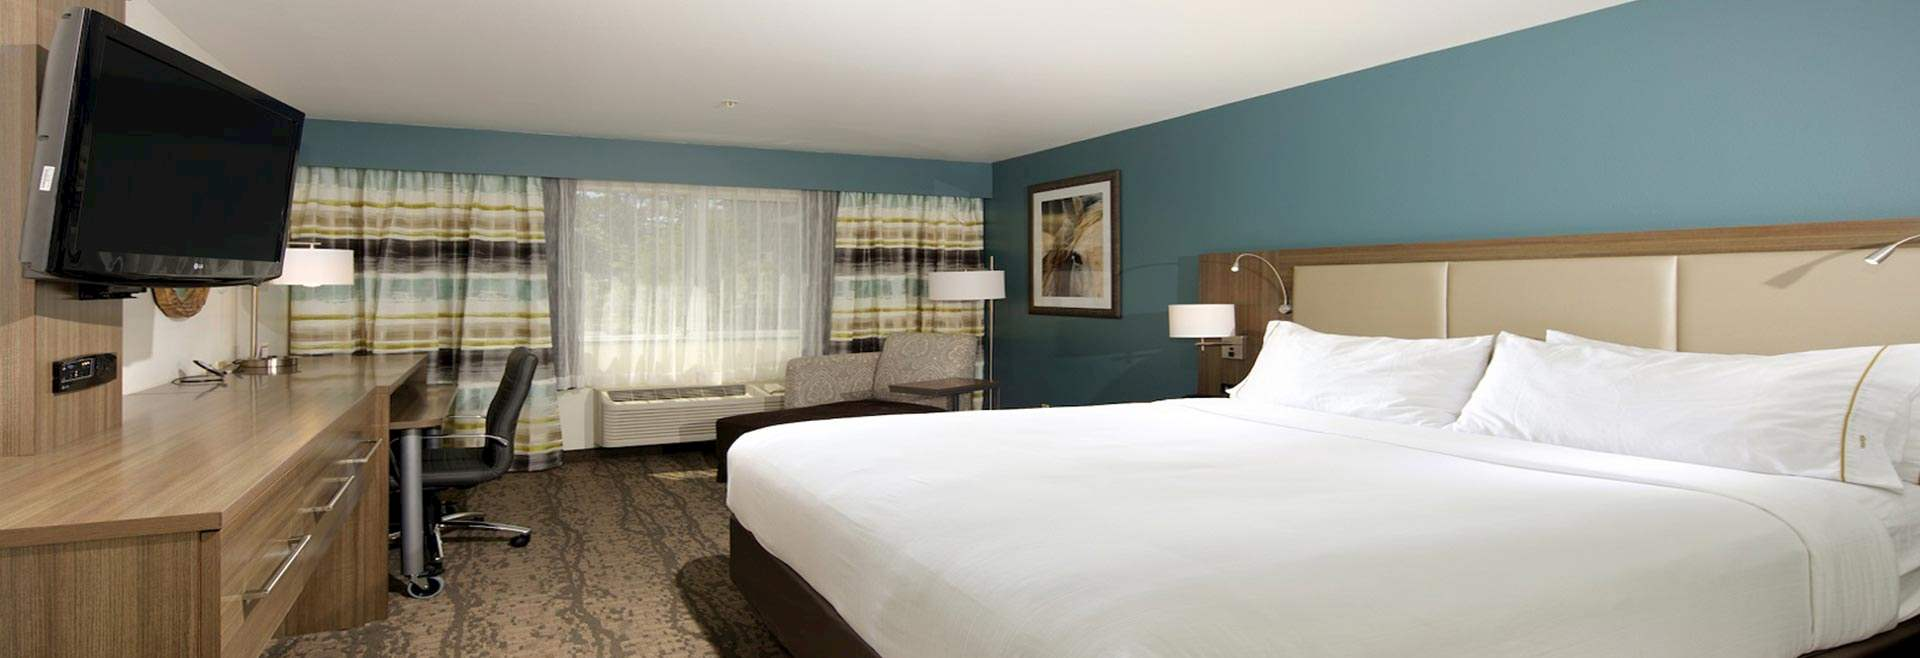 Accommodations at Holiday Inn Express Hotel & Suites - Paso Robles